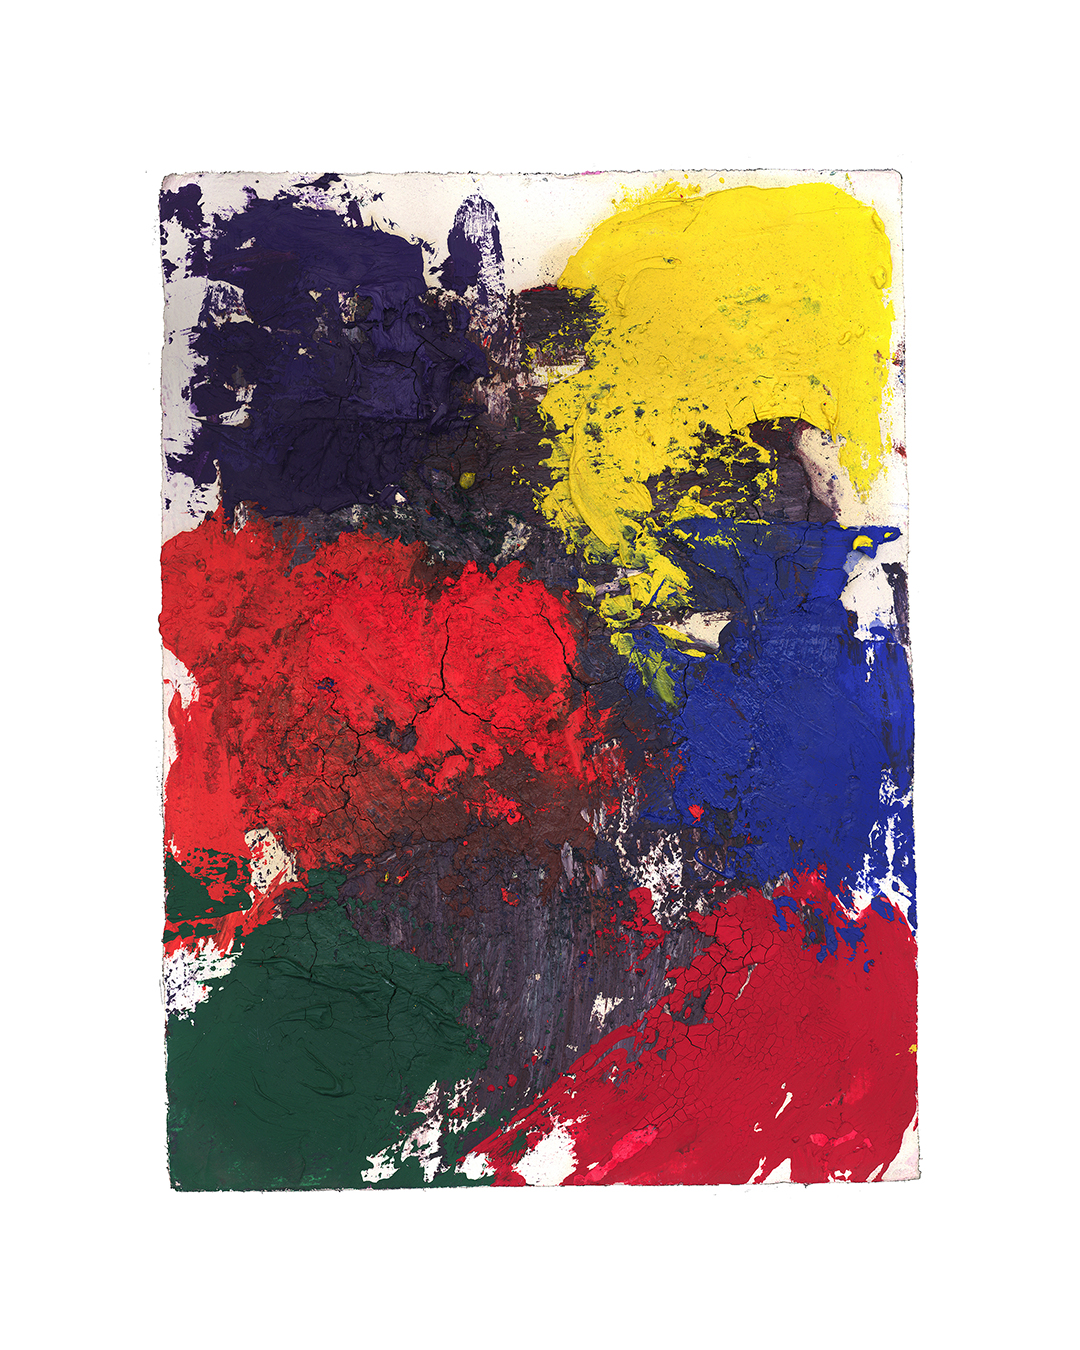 Piet Dieleman, untitled, 2020, painting, tempera, oil paint, acrylic paint on paper, 290 x 280 mm, €930